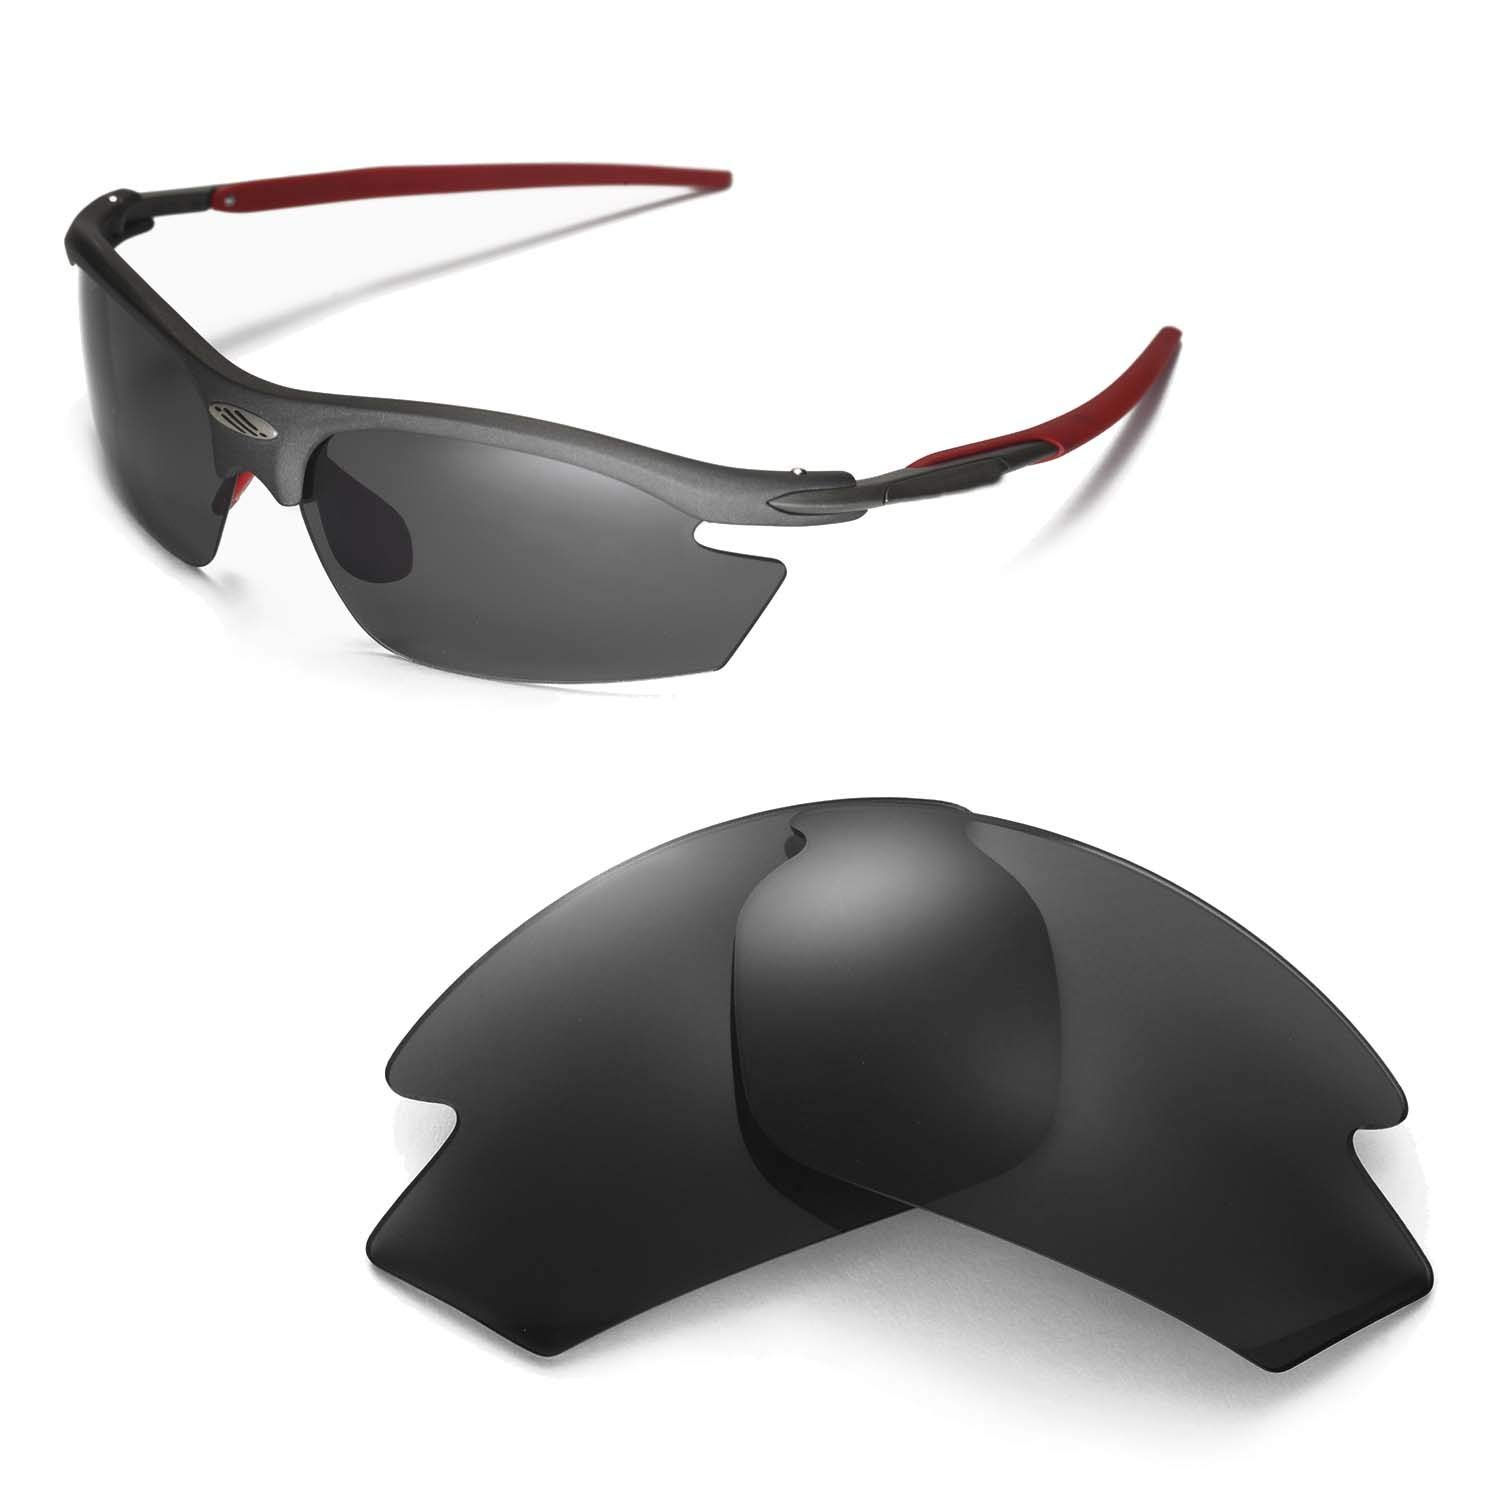 31f43b22d3 Get Quotations · Walleva Replacement Lenses for Rudy Project Rydon  Sunglasses - 16 Options Available